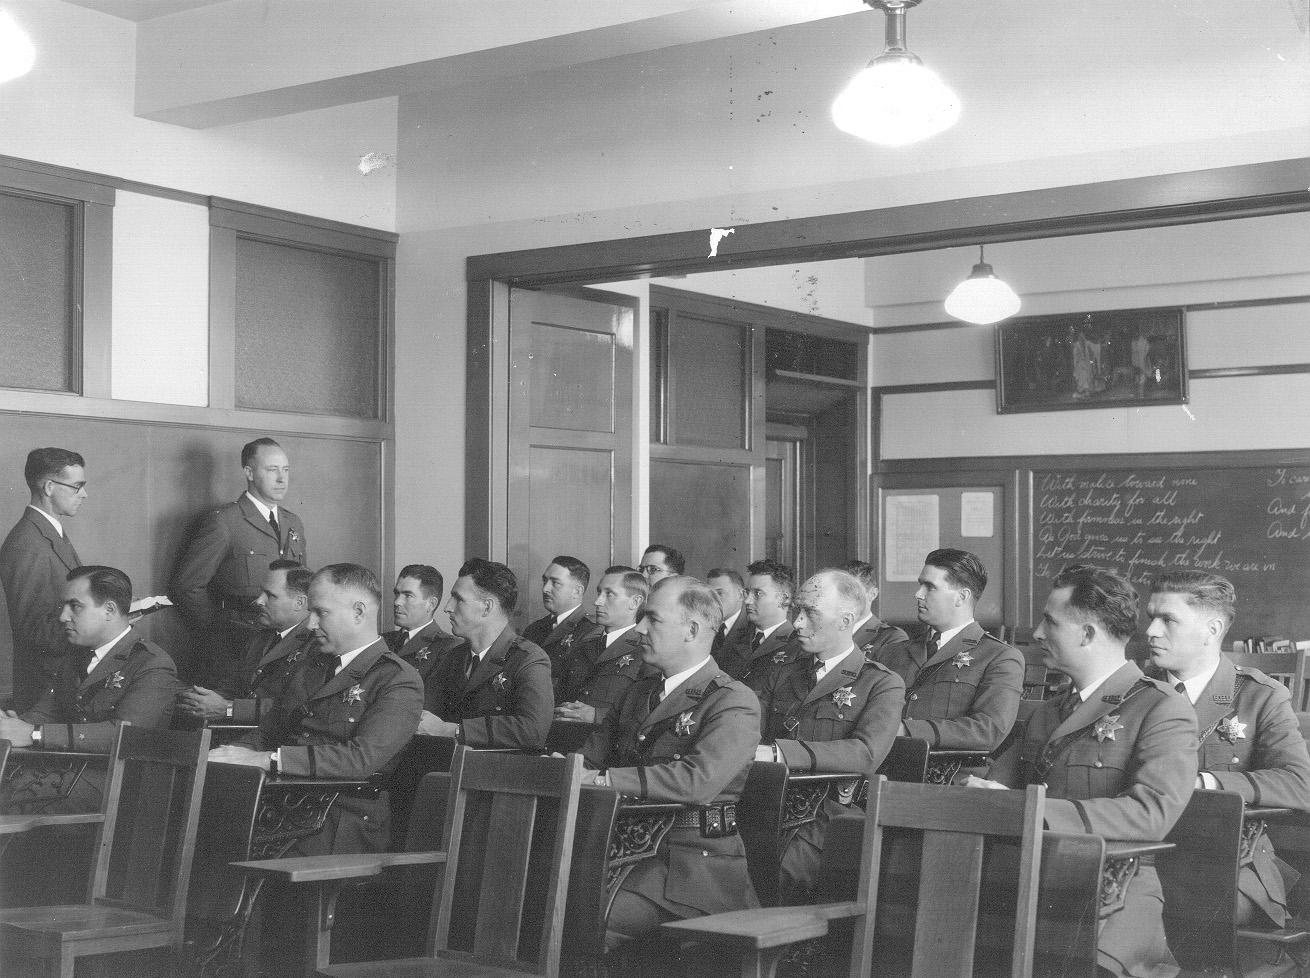 August Vollmer pioneered regular training for his officers. Here police officers listen to a lecture held at Berkeley City Hall in 1935.